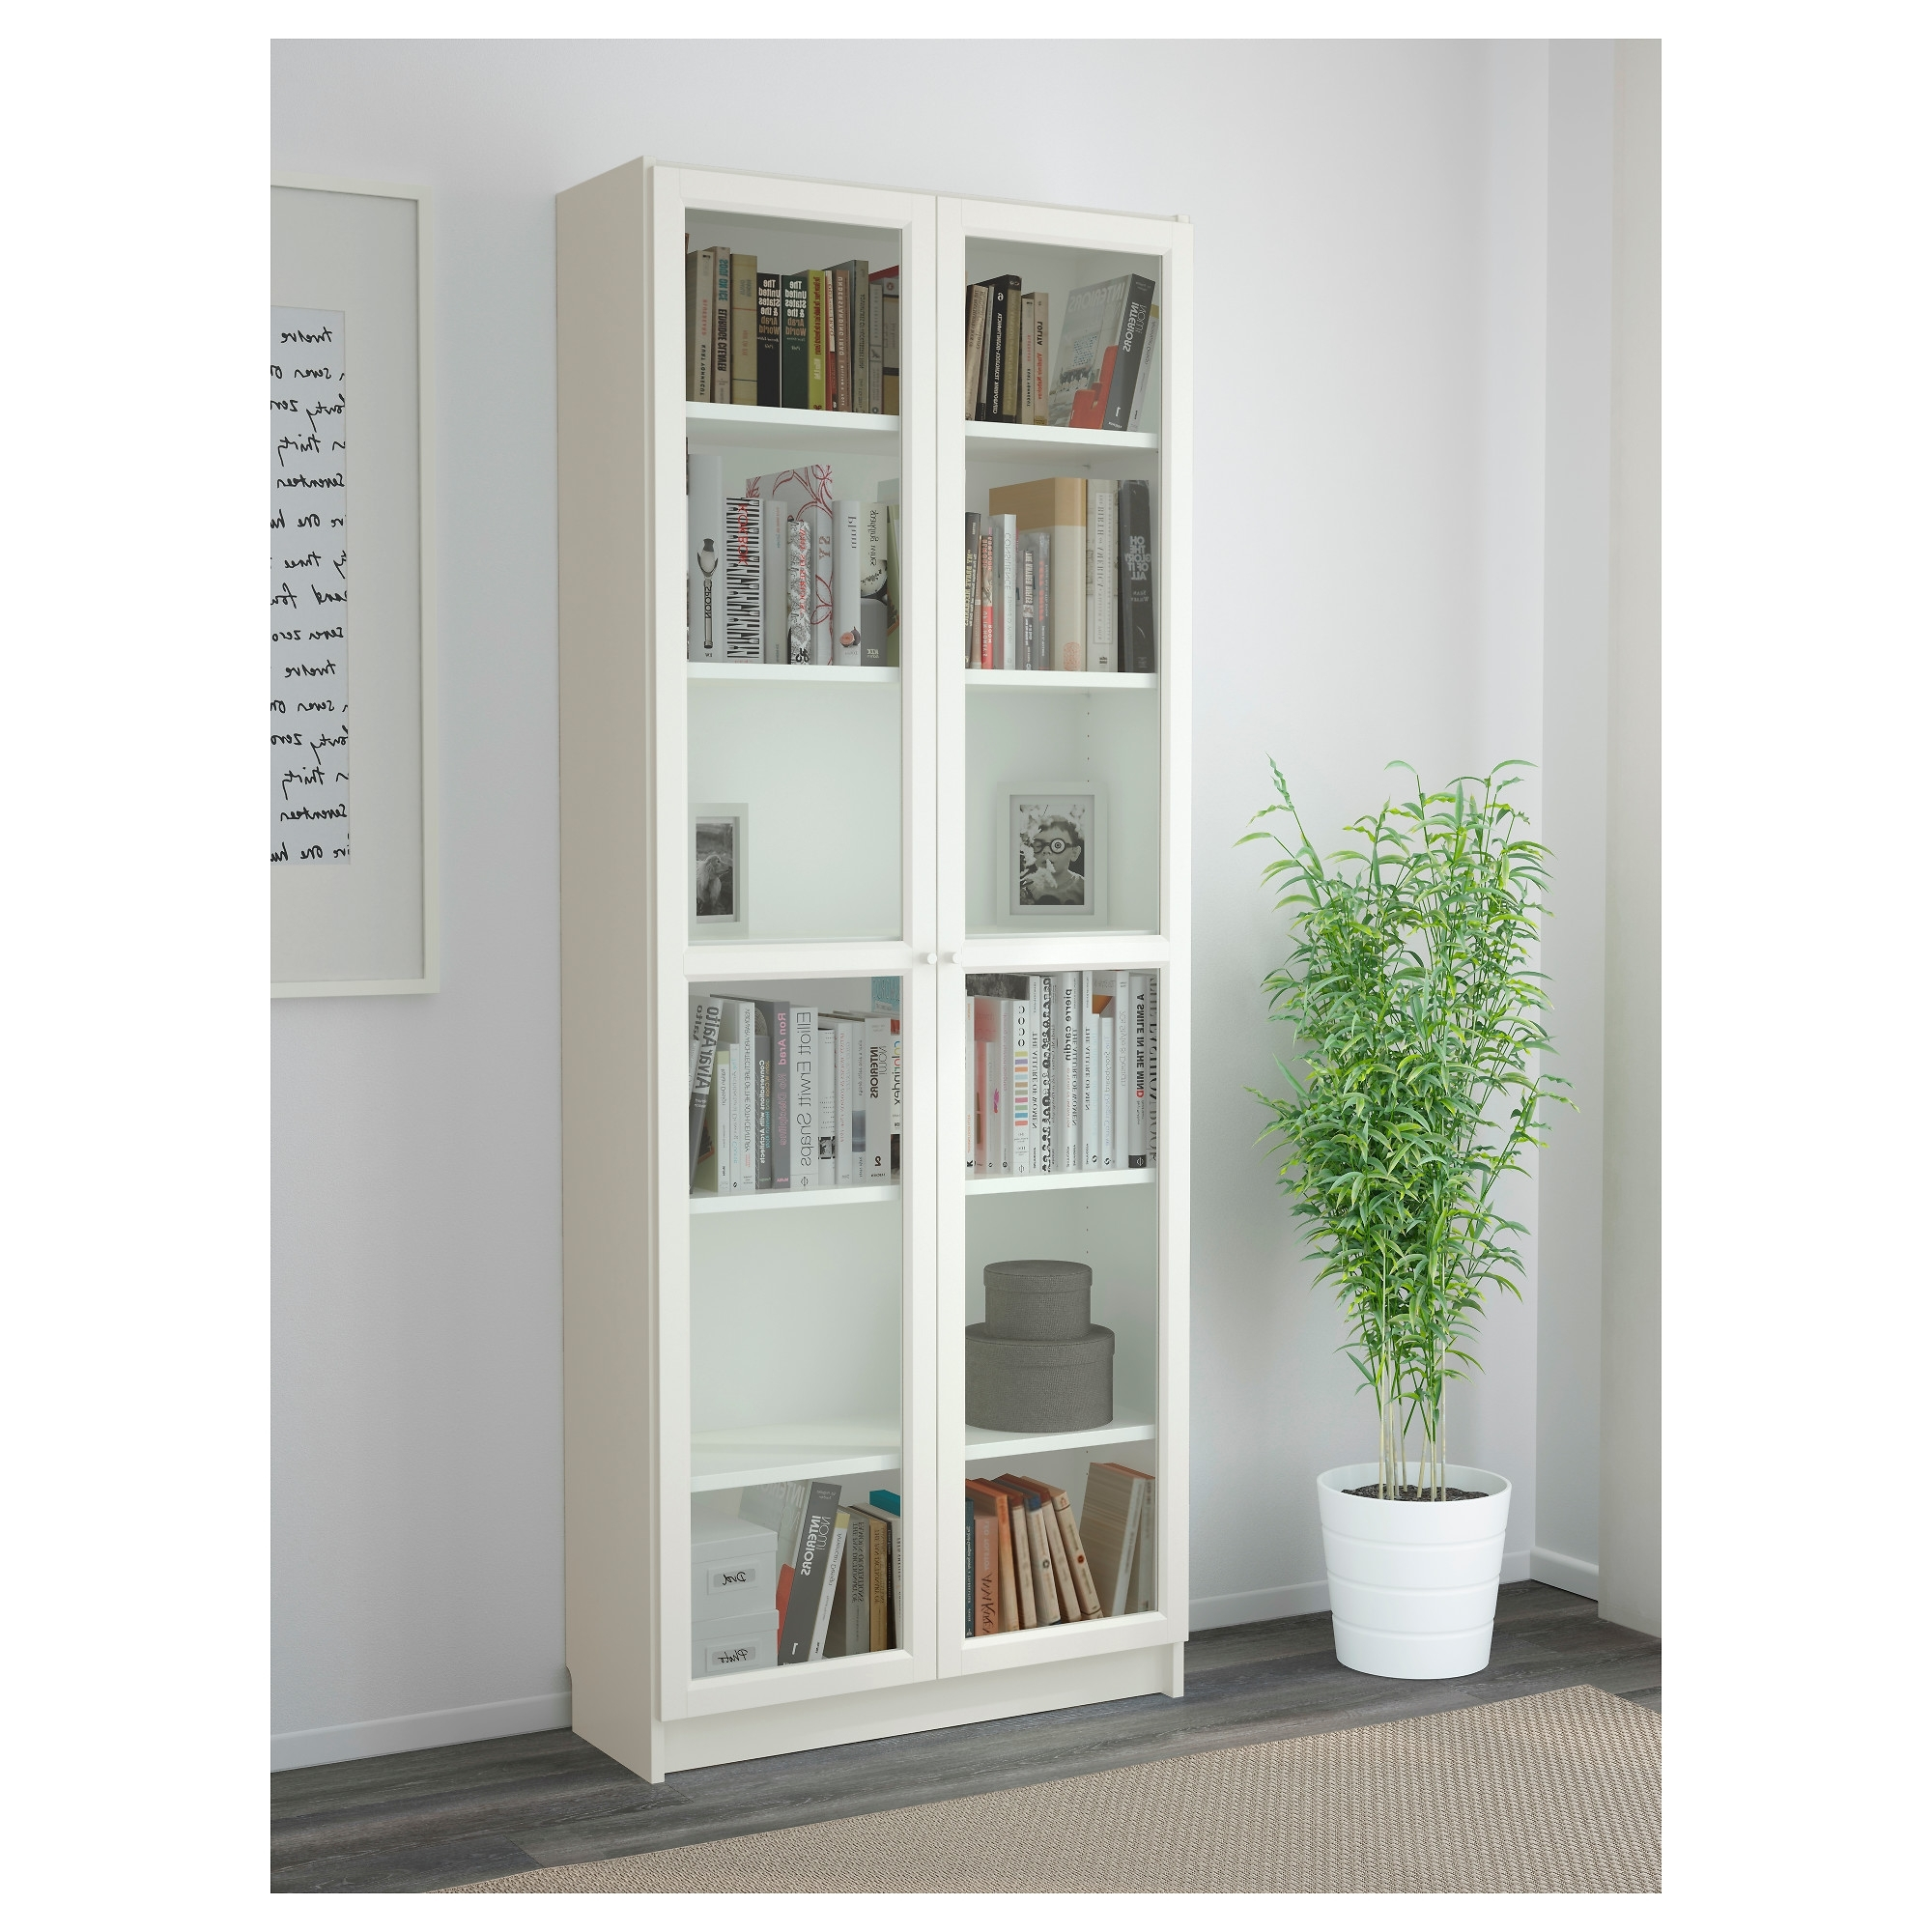 Preferred Billy / Oxberg Bookcase – White, 80X202X30 Cm – Ikea Inside White Bookcases With Glass Doors (View 11 of 15)